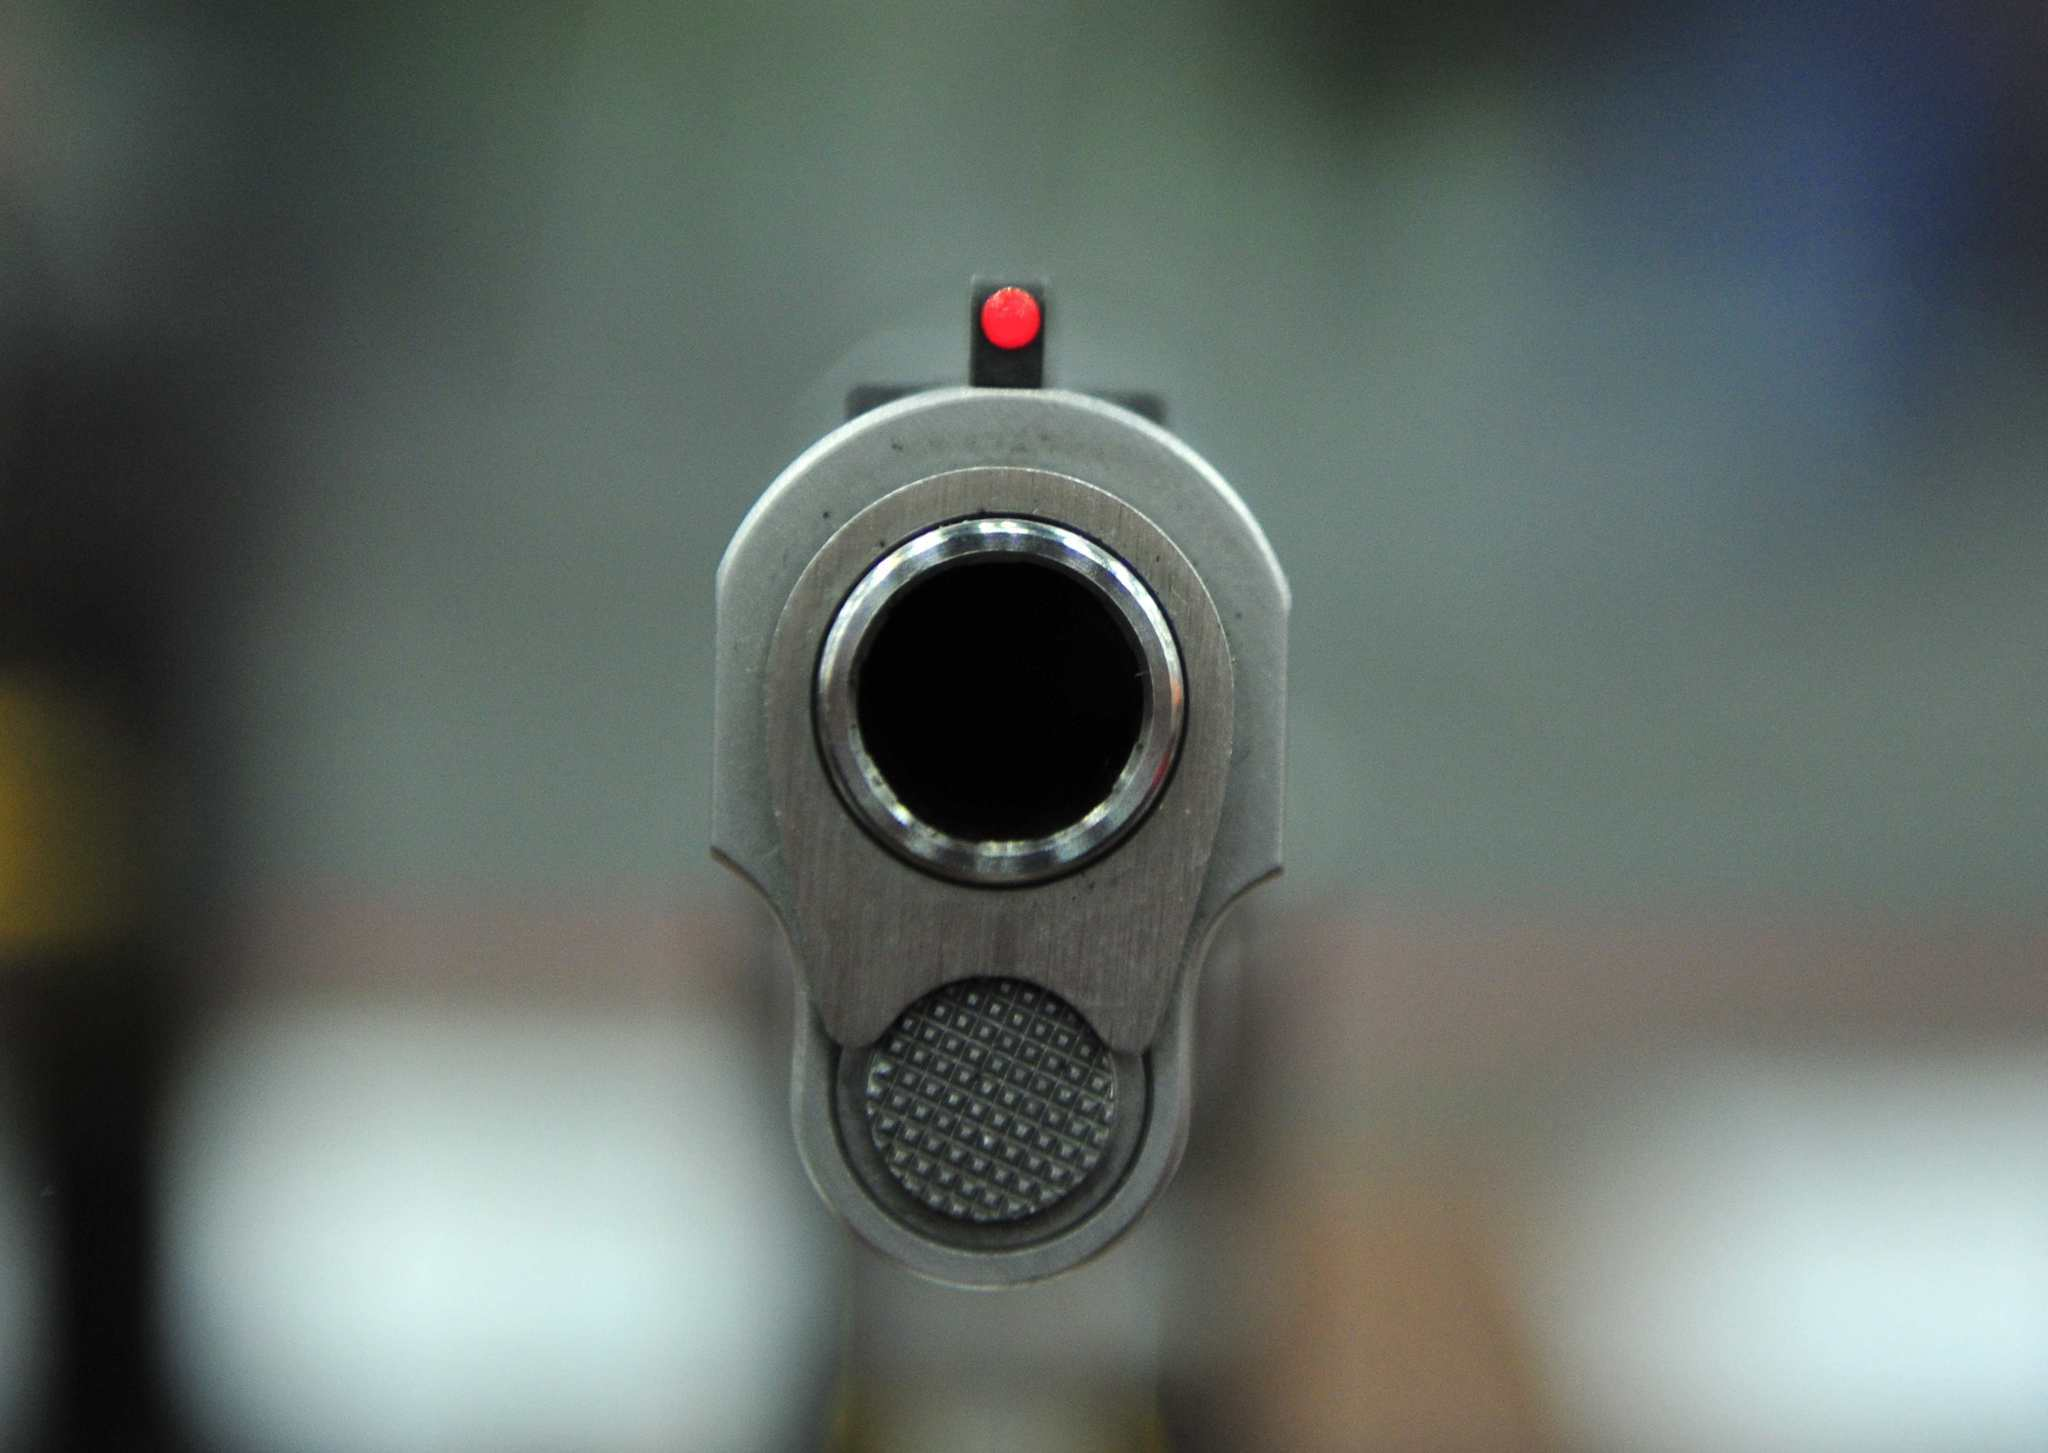 Related Story: Gun crime has plunged, but Americans think it's up, says study